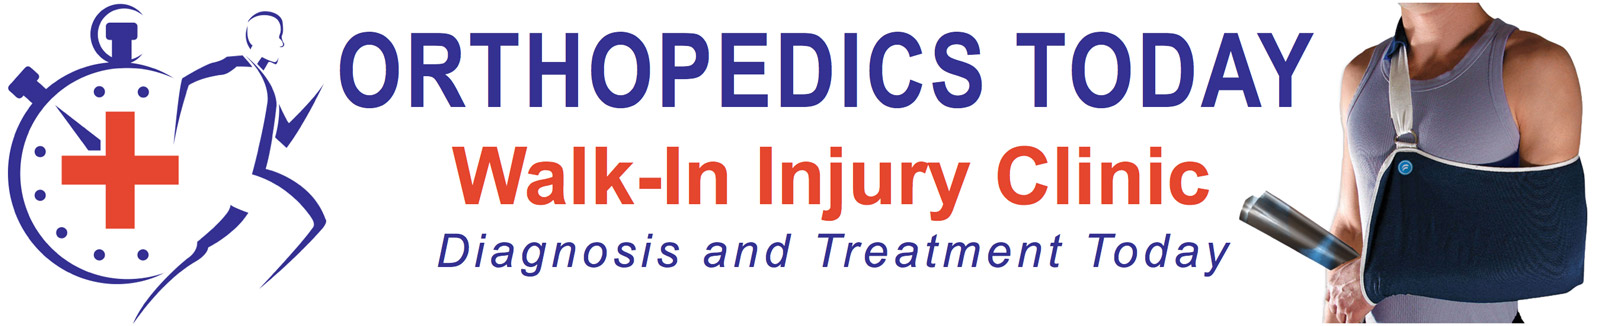 Orthopedics Today broken bones sprains